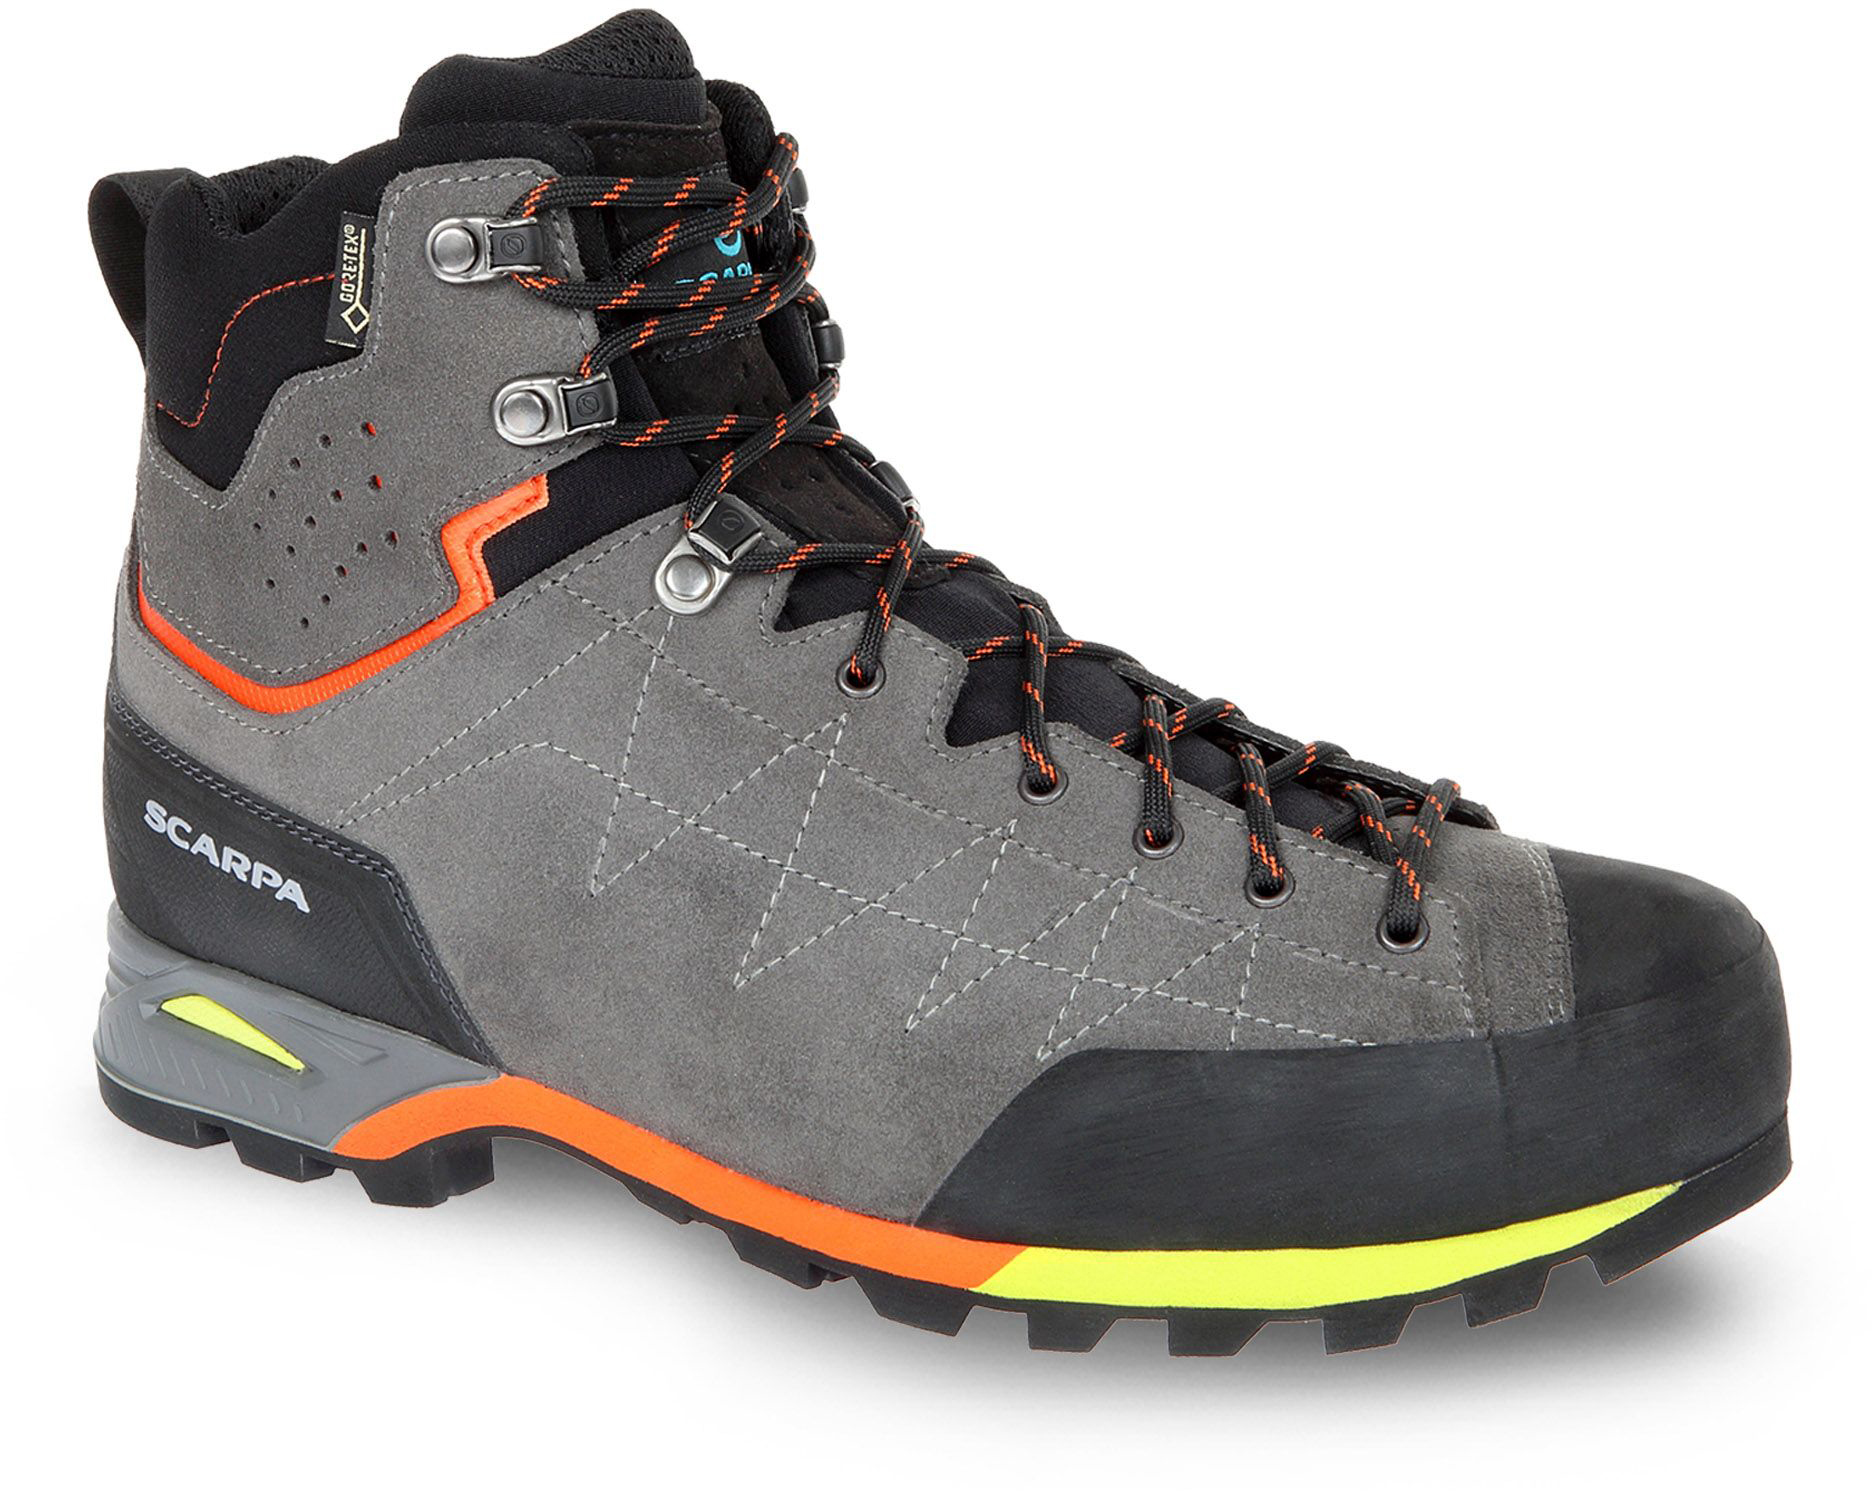 Scarpa Zodiac Plus Gore Tex Hiking Boots Men's